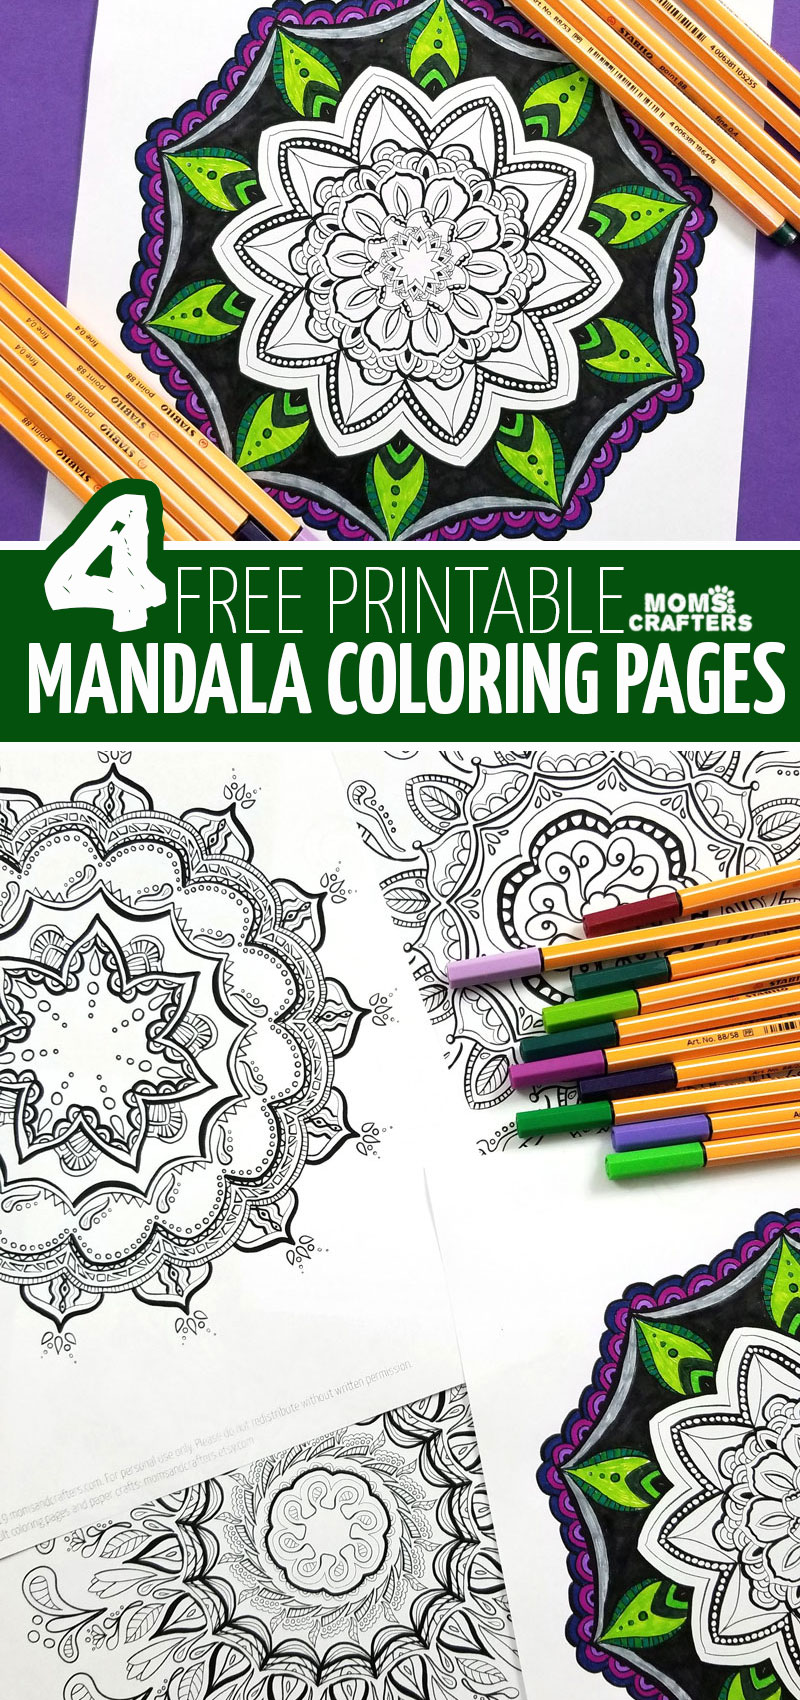 free printable mandala coloring pages v2